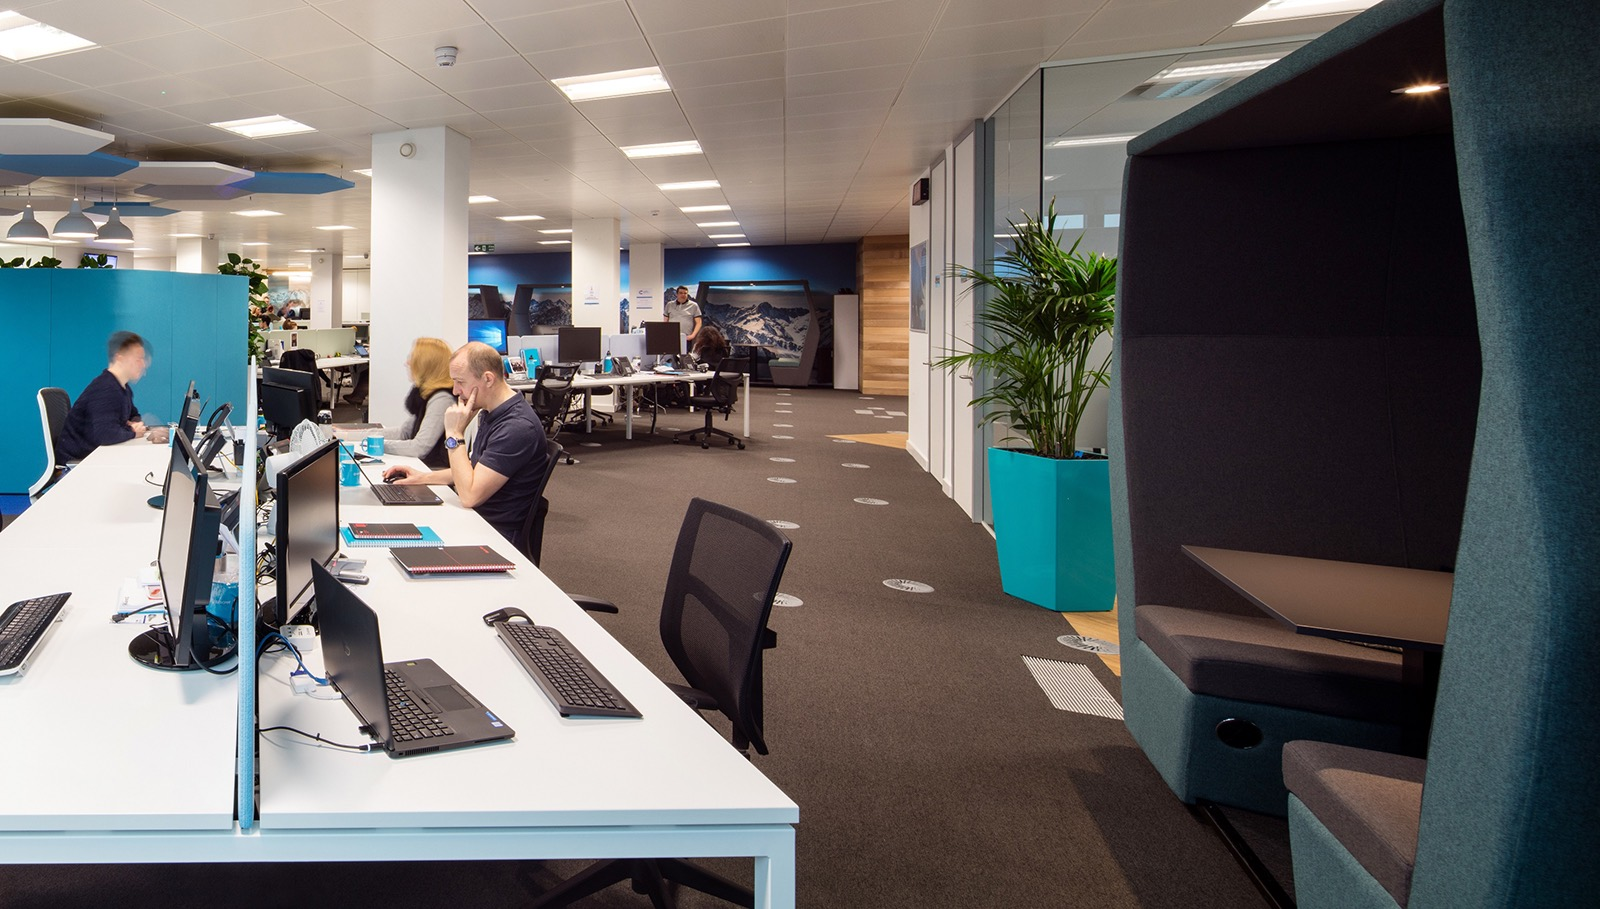 snow-software-office-england-4